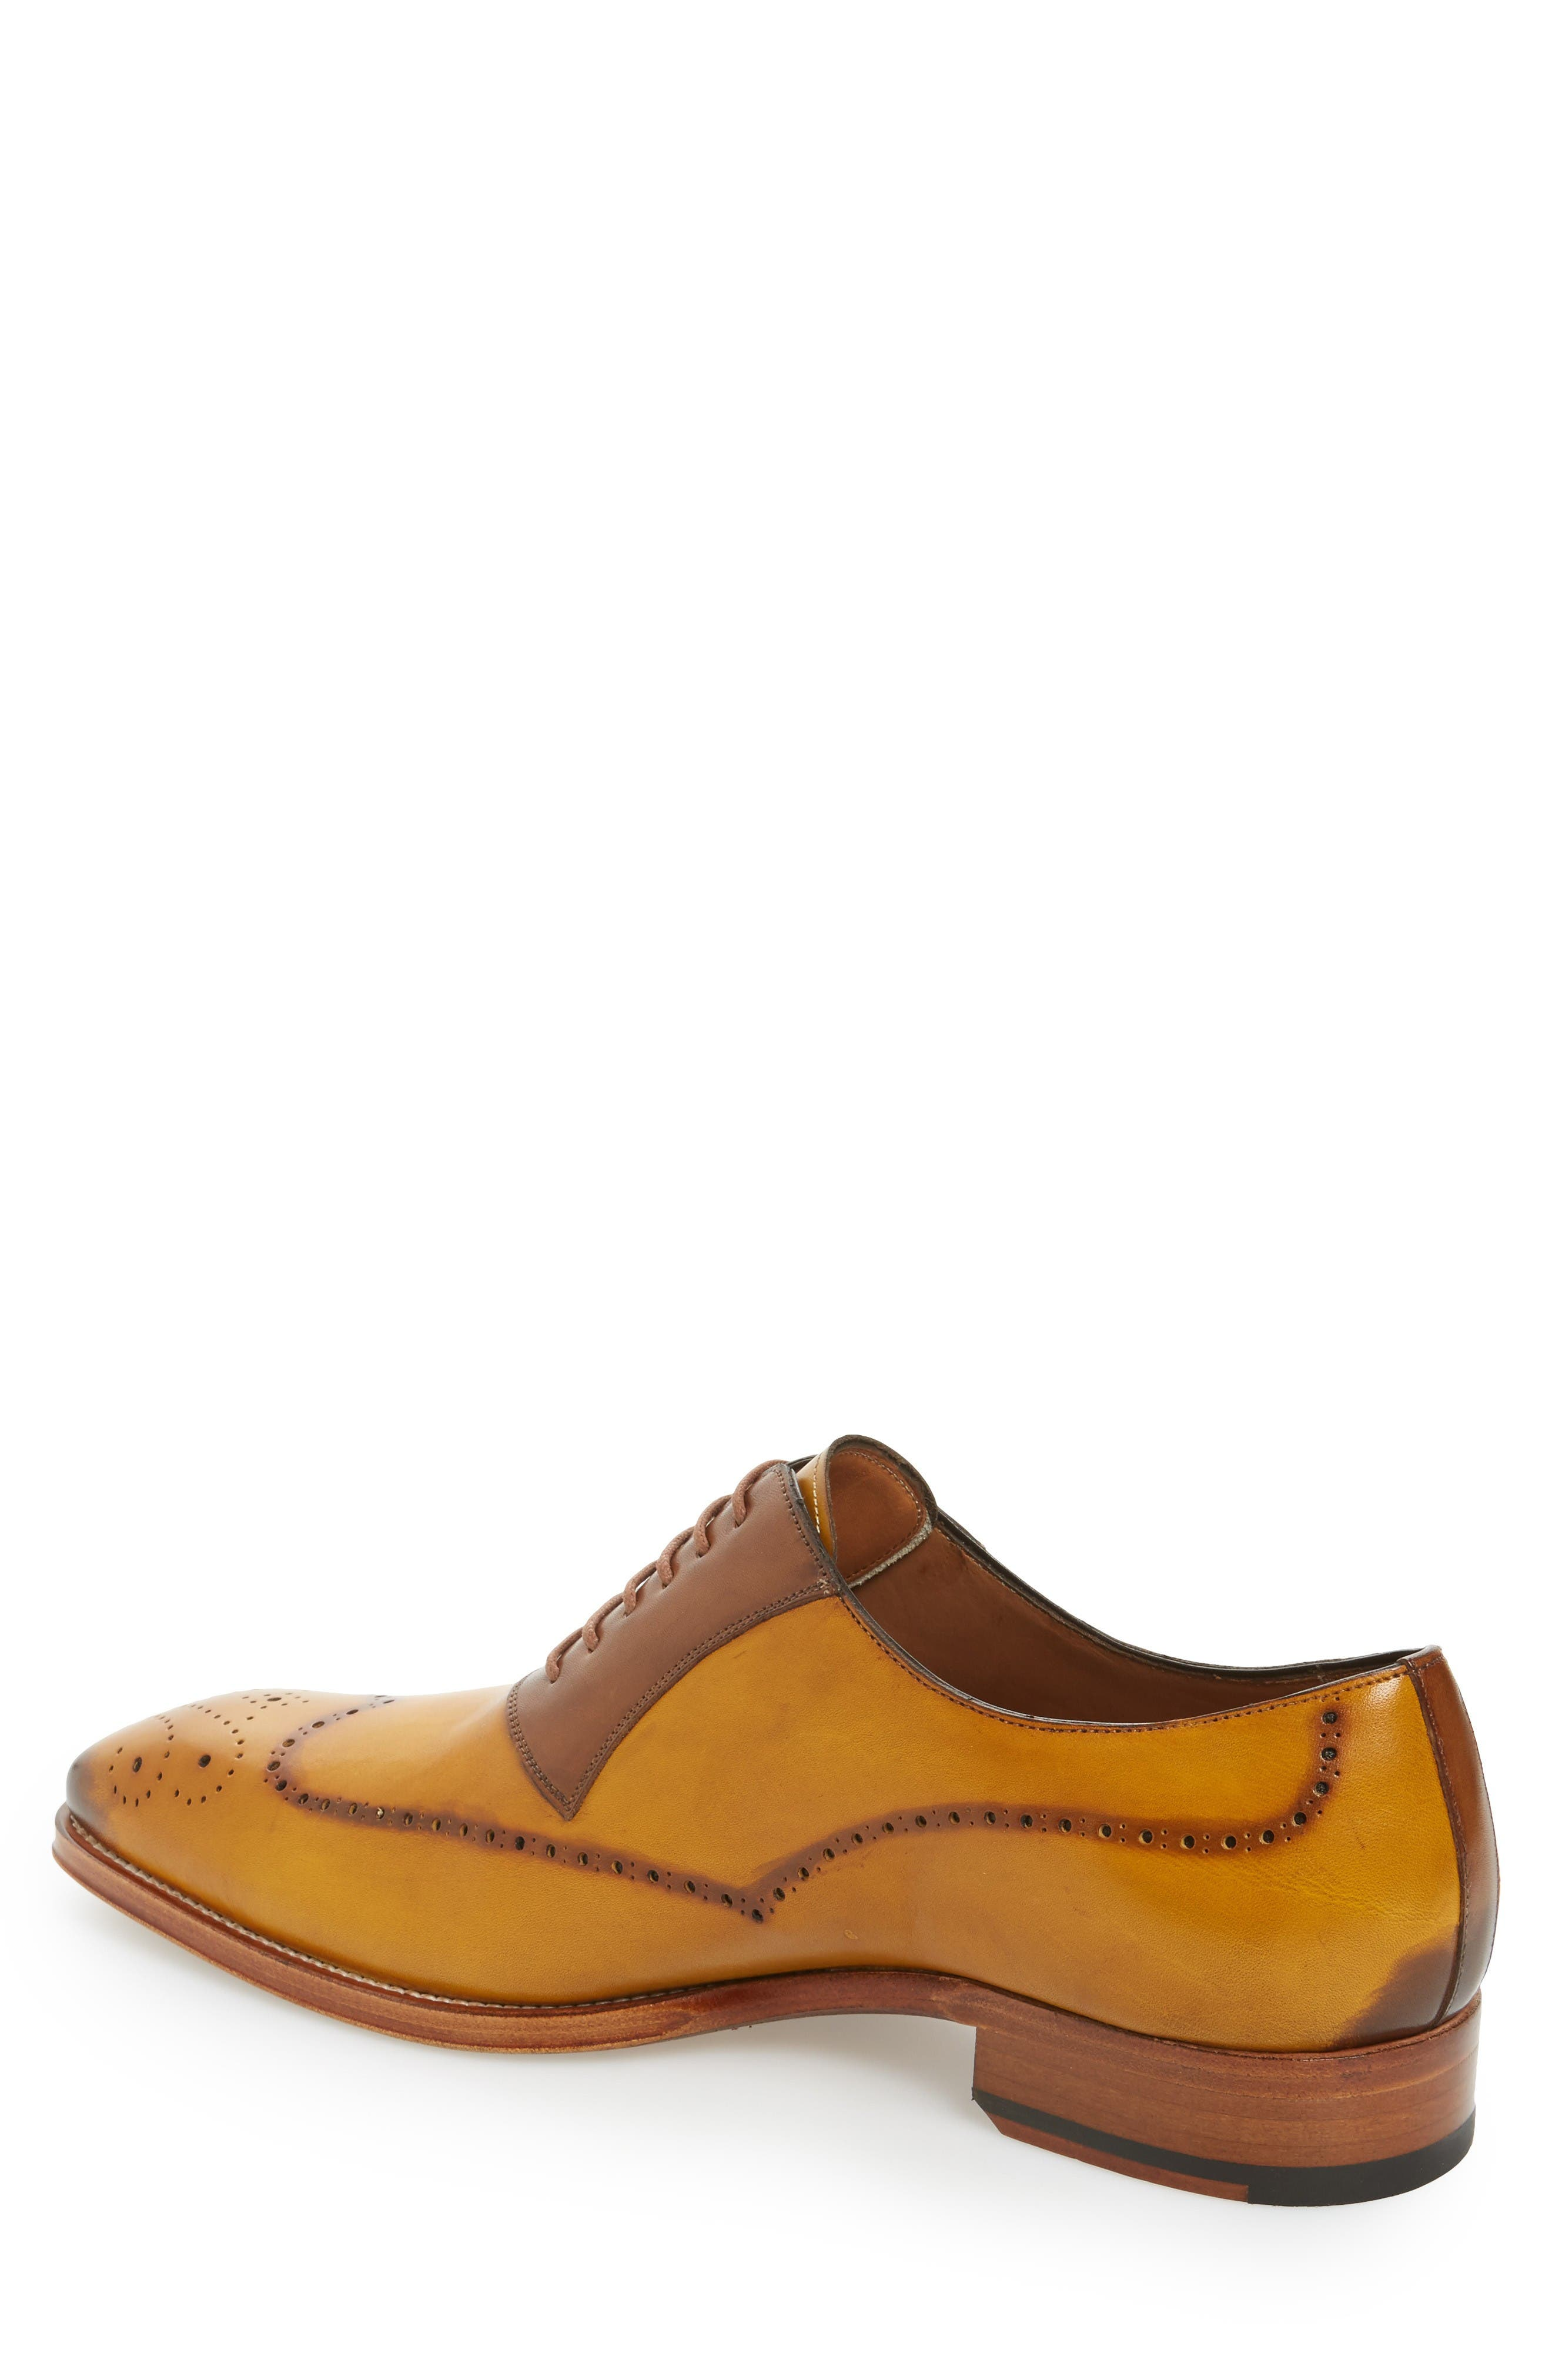 Kelvin Faux Wingtip,                             Alternate thumbnail 2, color,                             Mustard/ Tan Leather